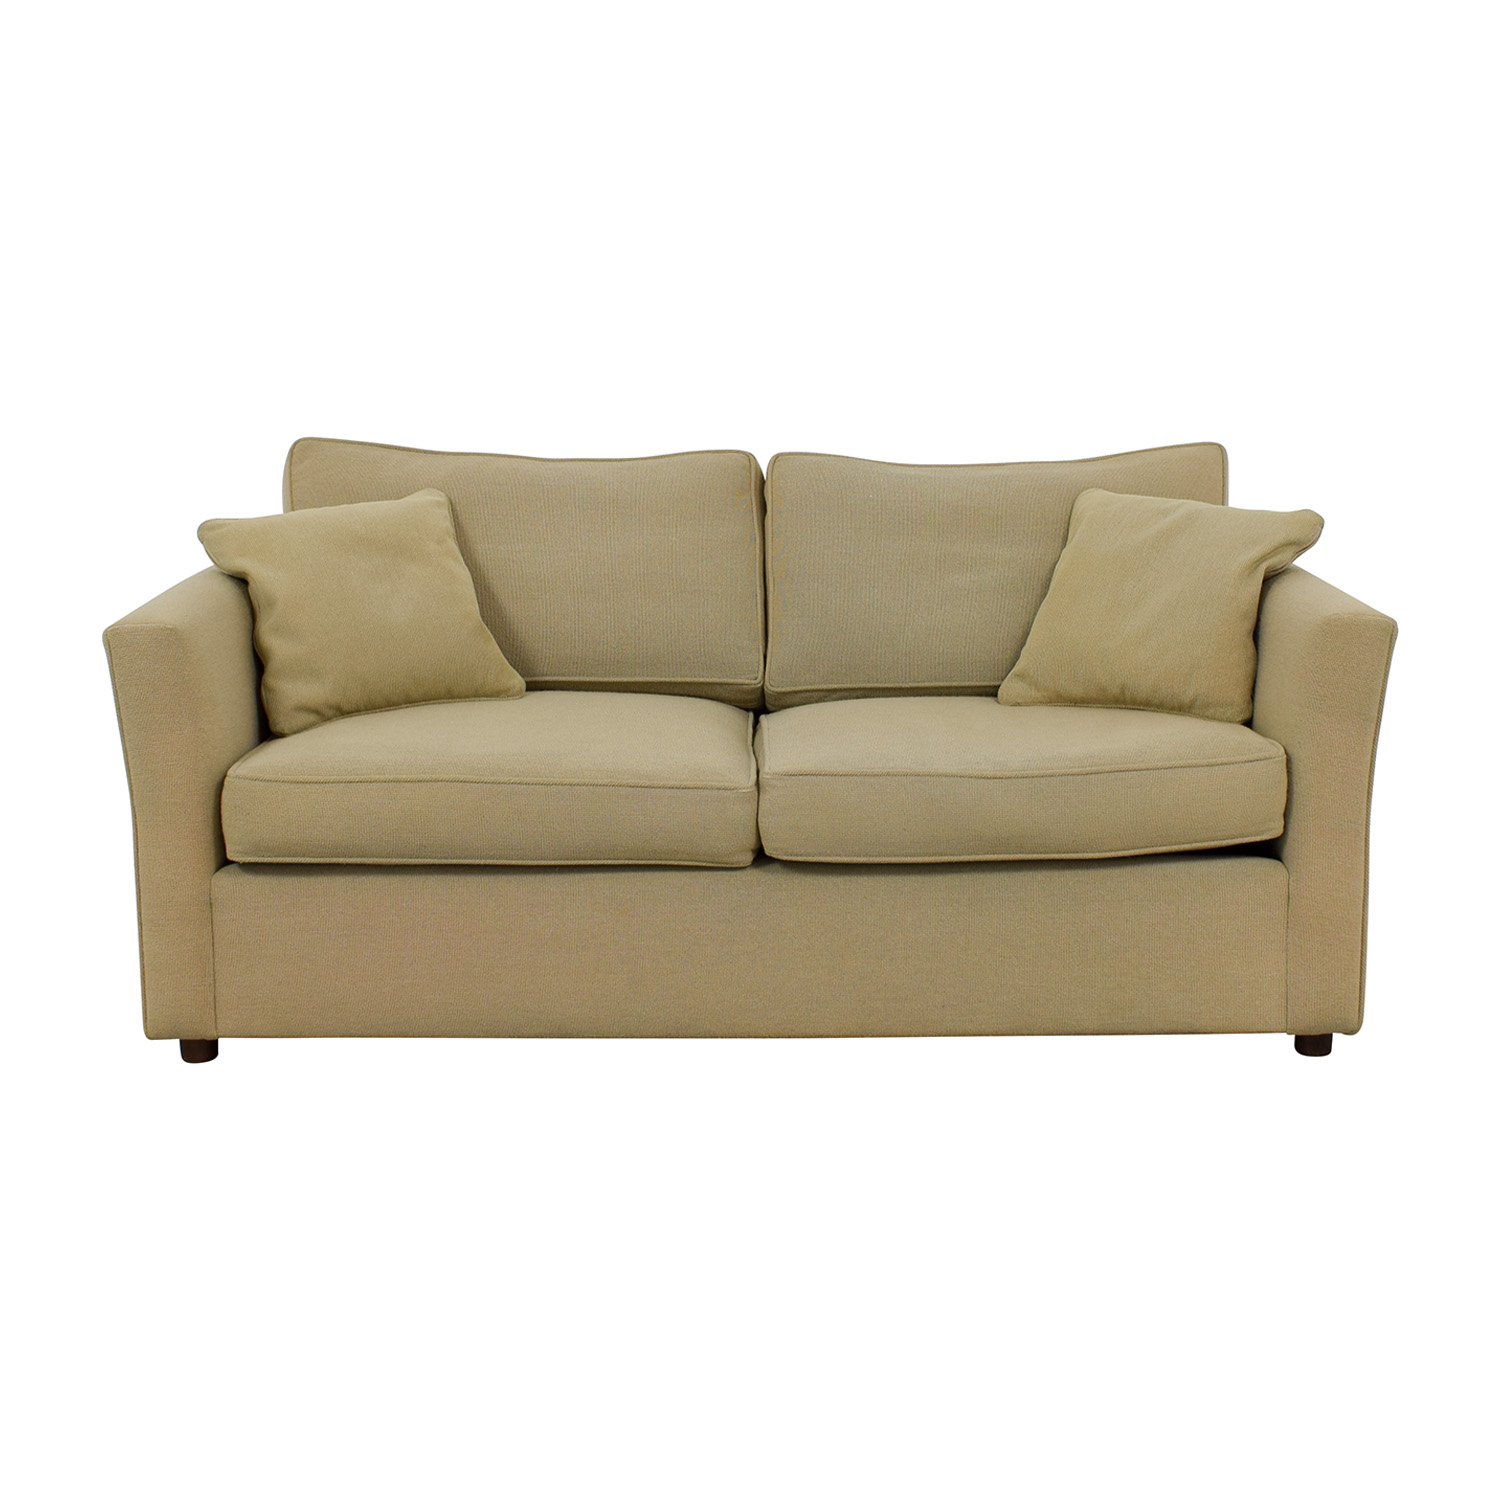 Custom Beige Two-Cushion Sofa nyc